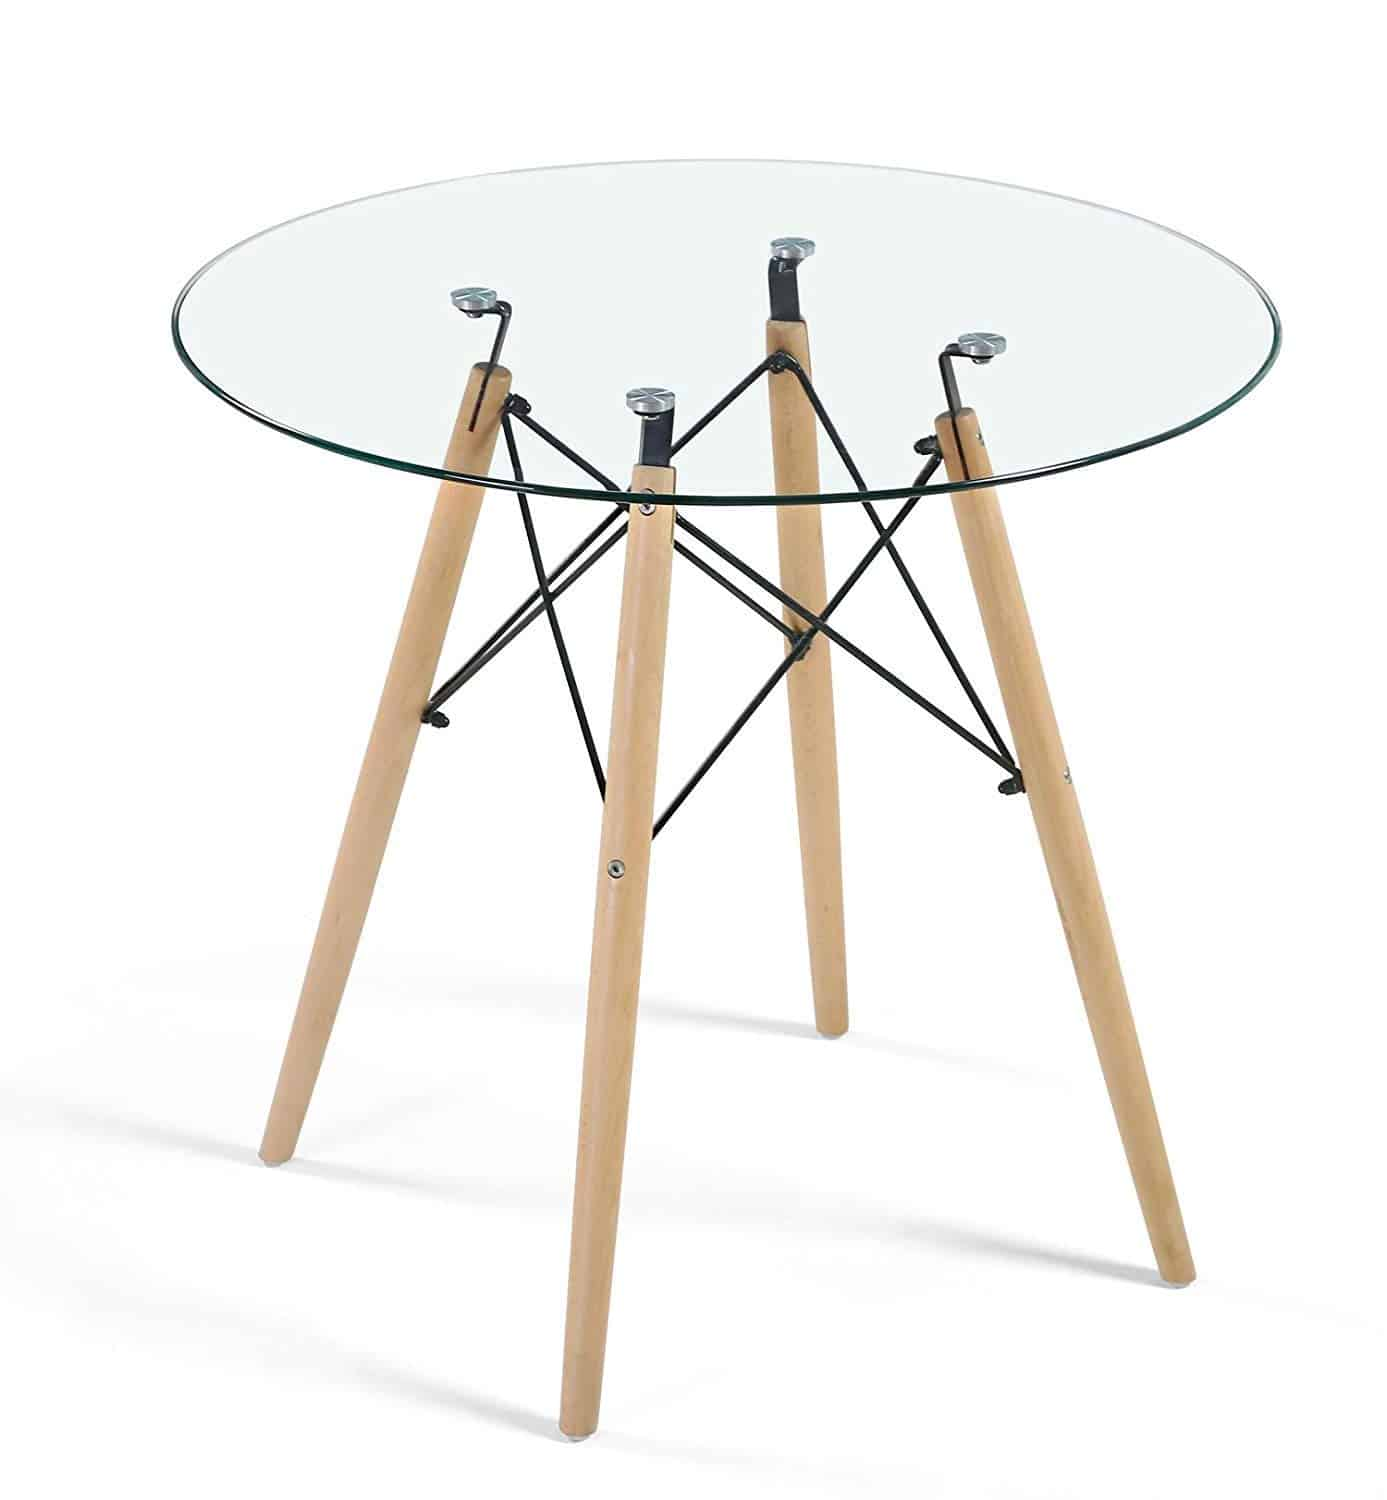 HAYOSNFO Modern Dining Table with Glass Top